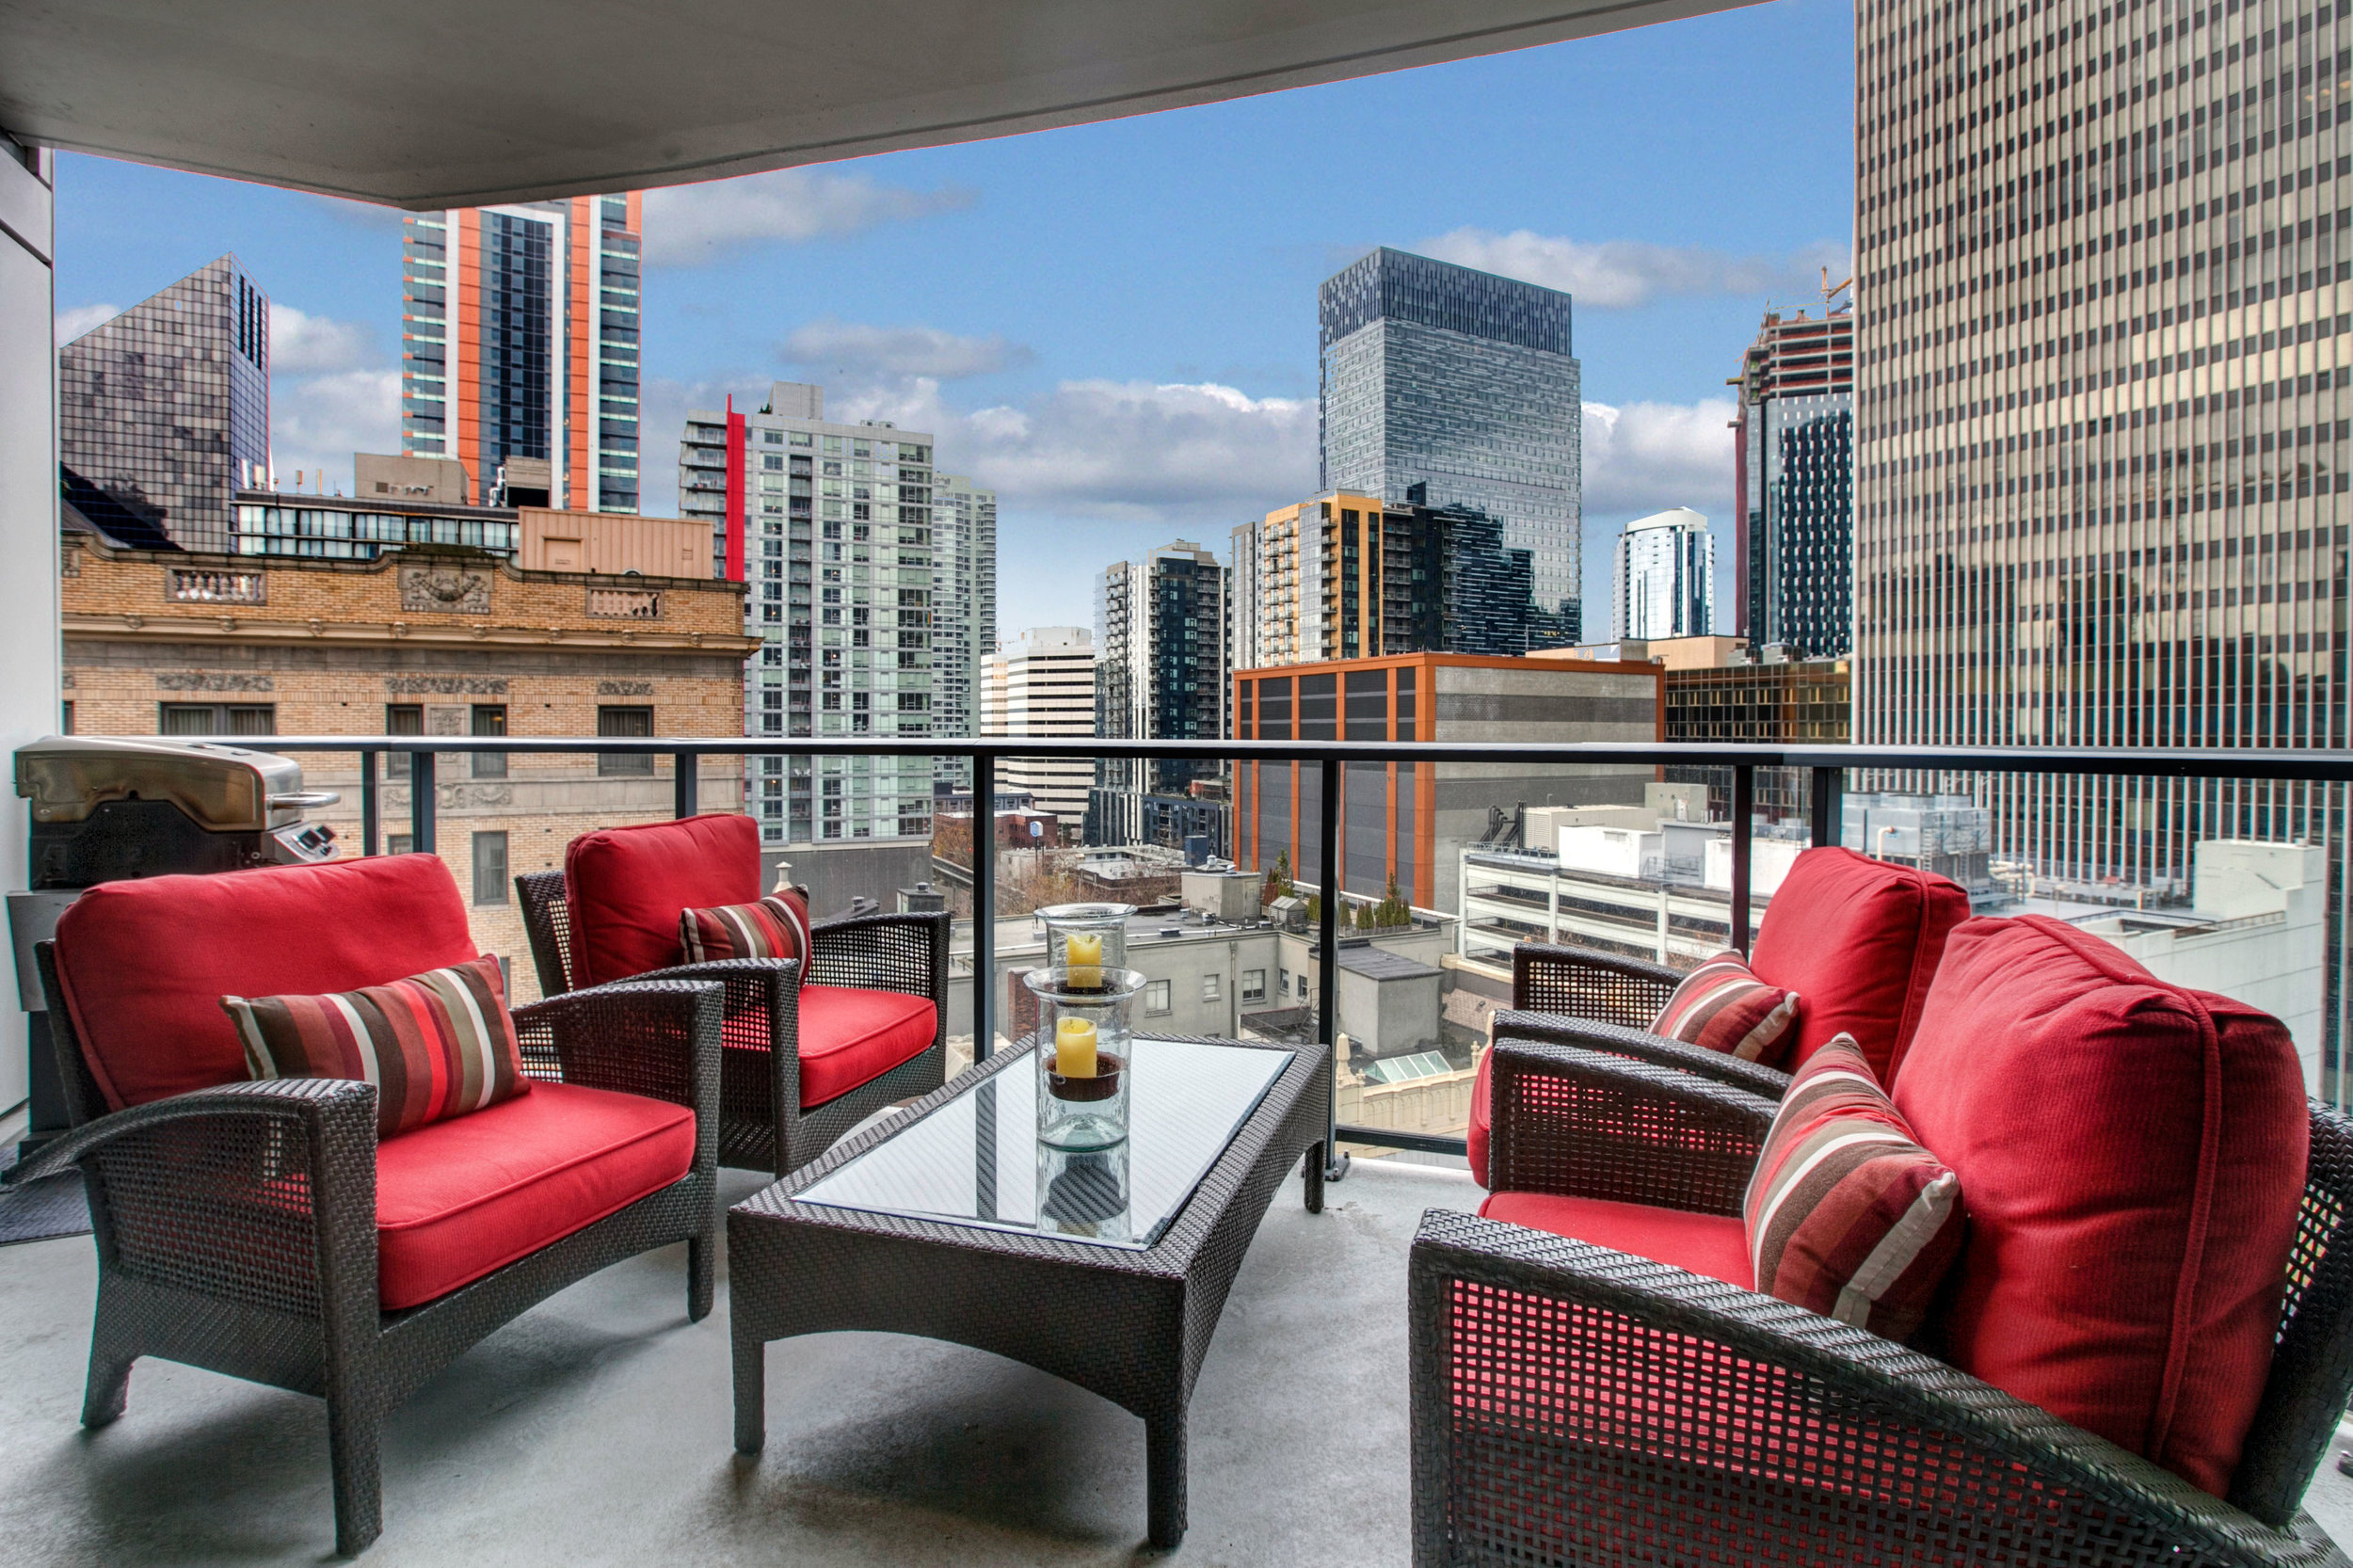 SOLD | ESCALA # 811 - 2 Bedroom, 2 Bathrooms, 1,607 Square Feet2 Parking Space, 1 Storage UnitSOLD at $995,000